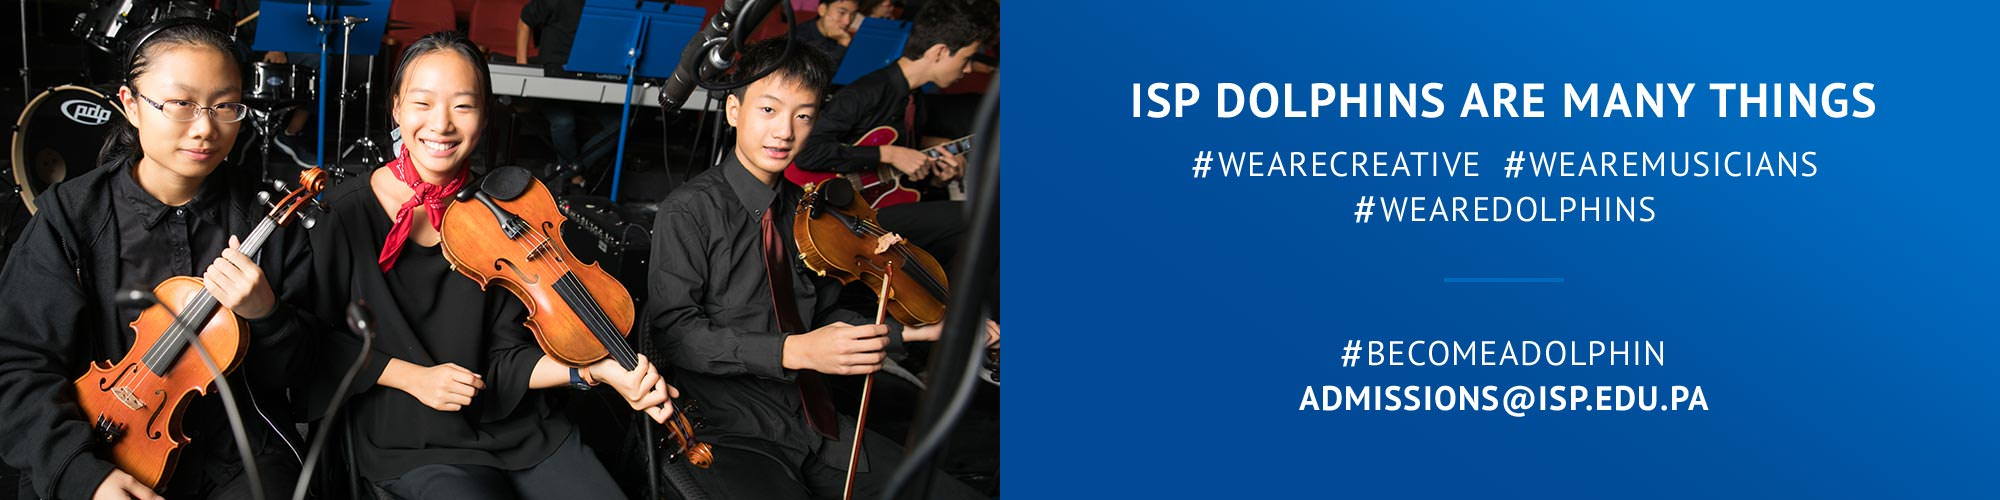 ISP Dolphins are many things #wearecreative #wearemusicians #wearedolphins  #becomeadolphin admissions@isp.edu.pa